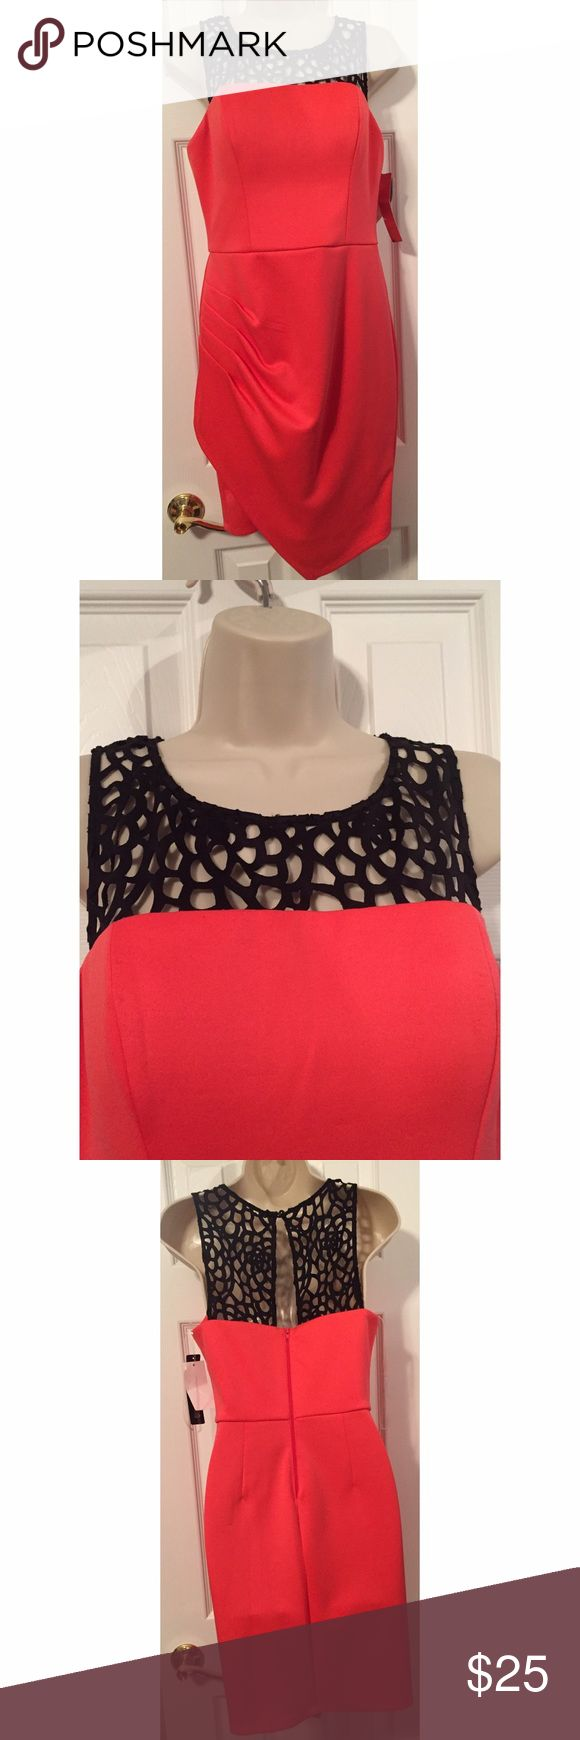 NWT Sequin Hearts Asymmetrical Dress This sexy dress retails for $69! Bright orange with gathering on the side, an asymmetrical skirt, and flattering black lattice chest, it's perfect for the club or bar! Sequin Hearts Dresses Asymmetrical